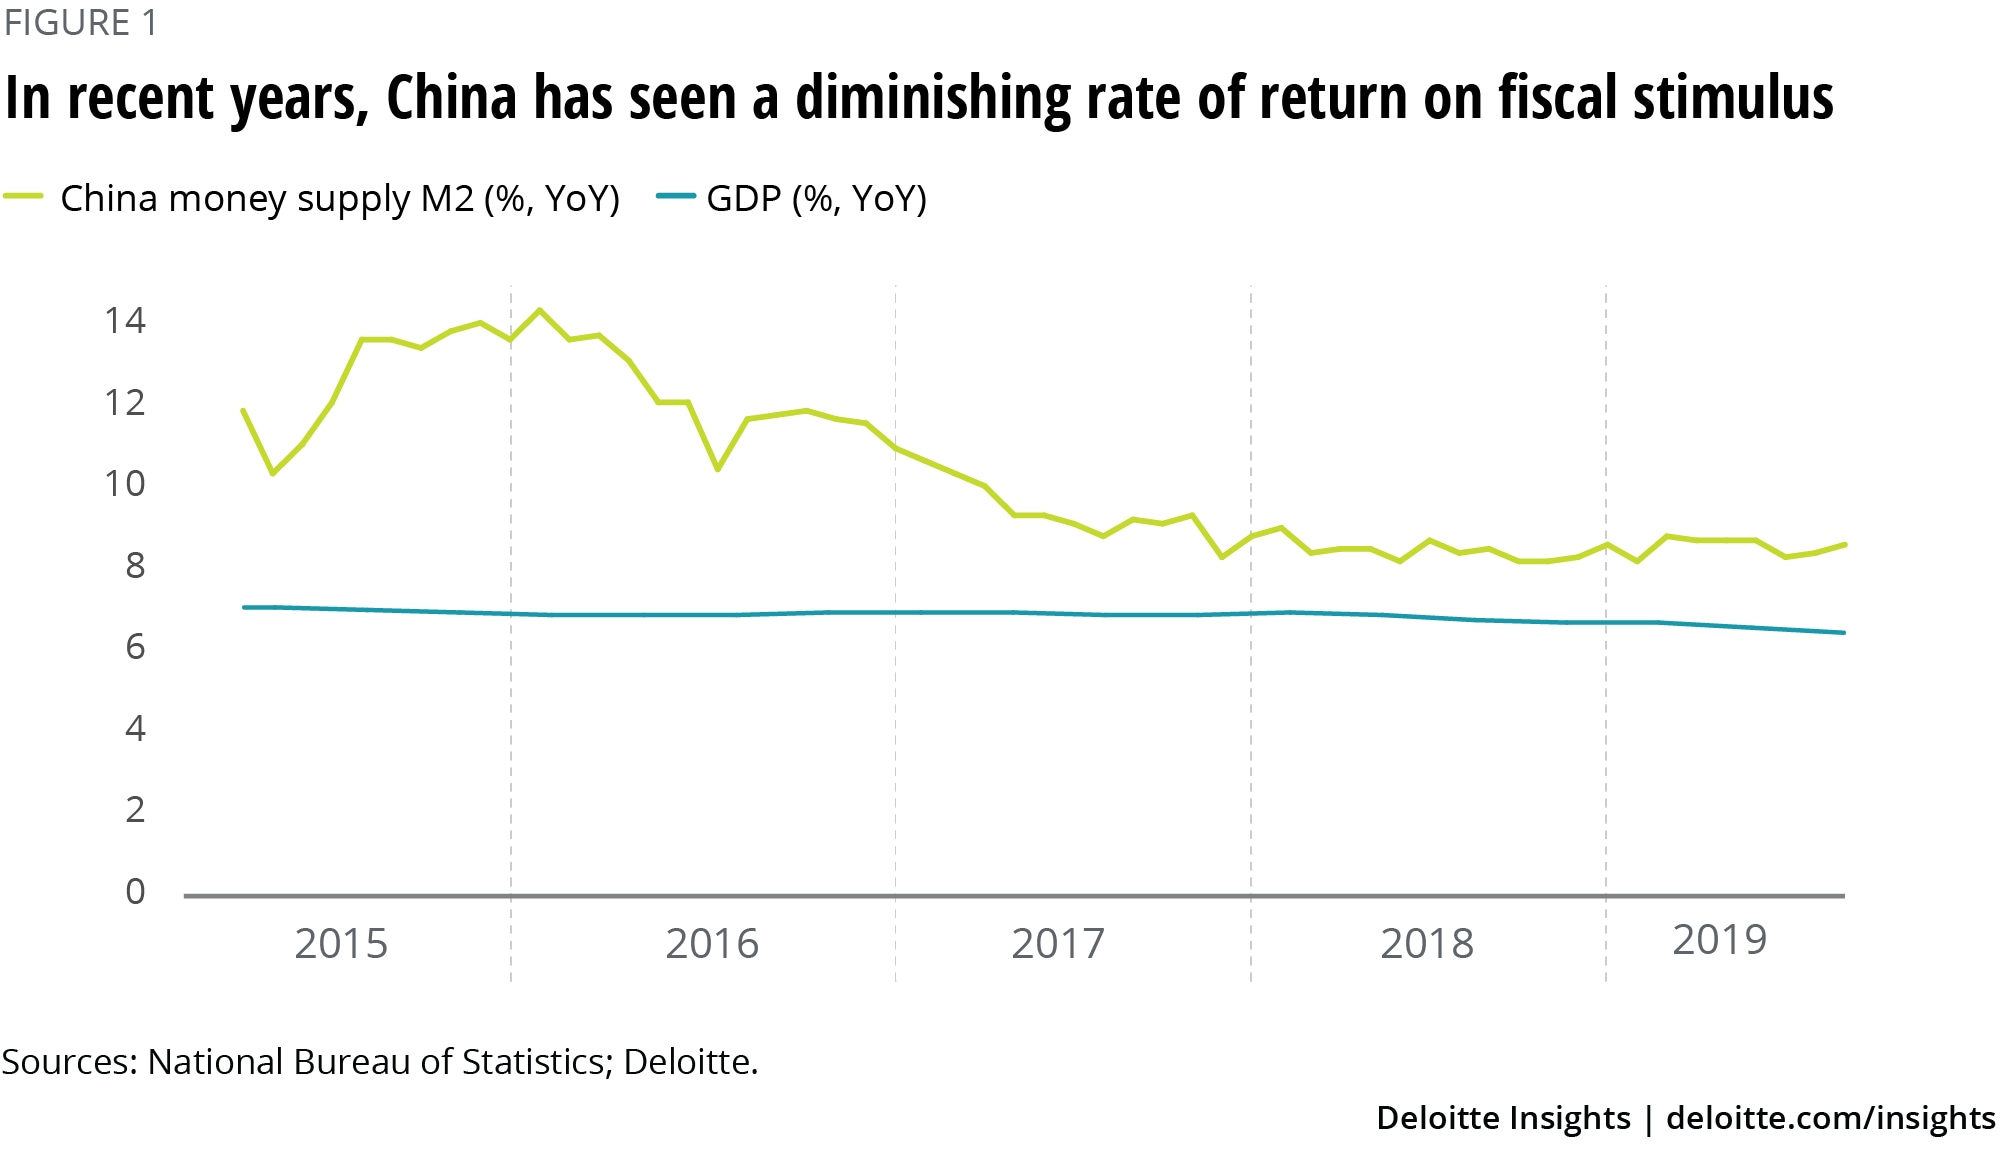 In recent years, China has seen a diminishing rate of return on fiscal stimulus